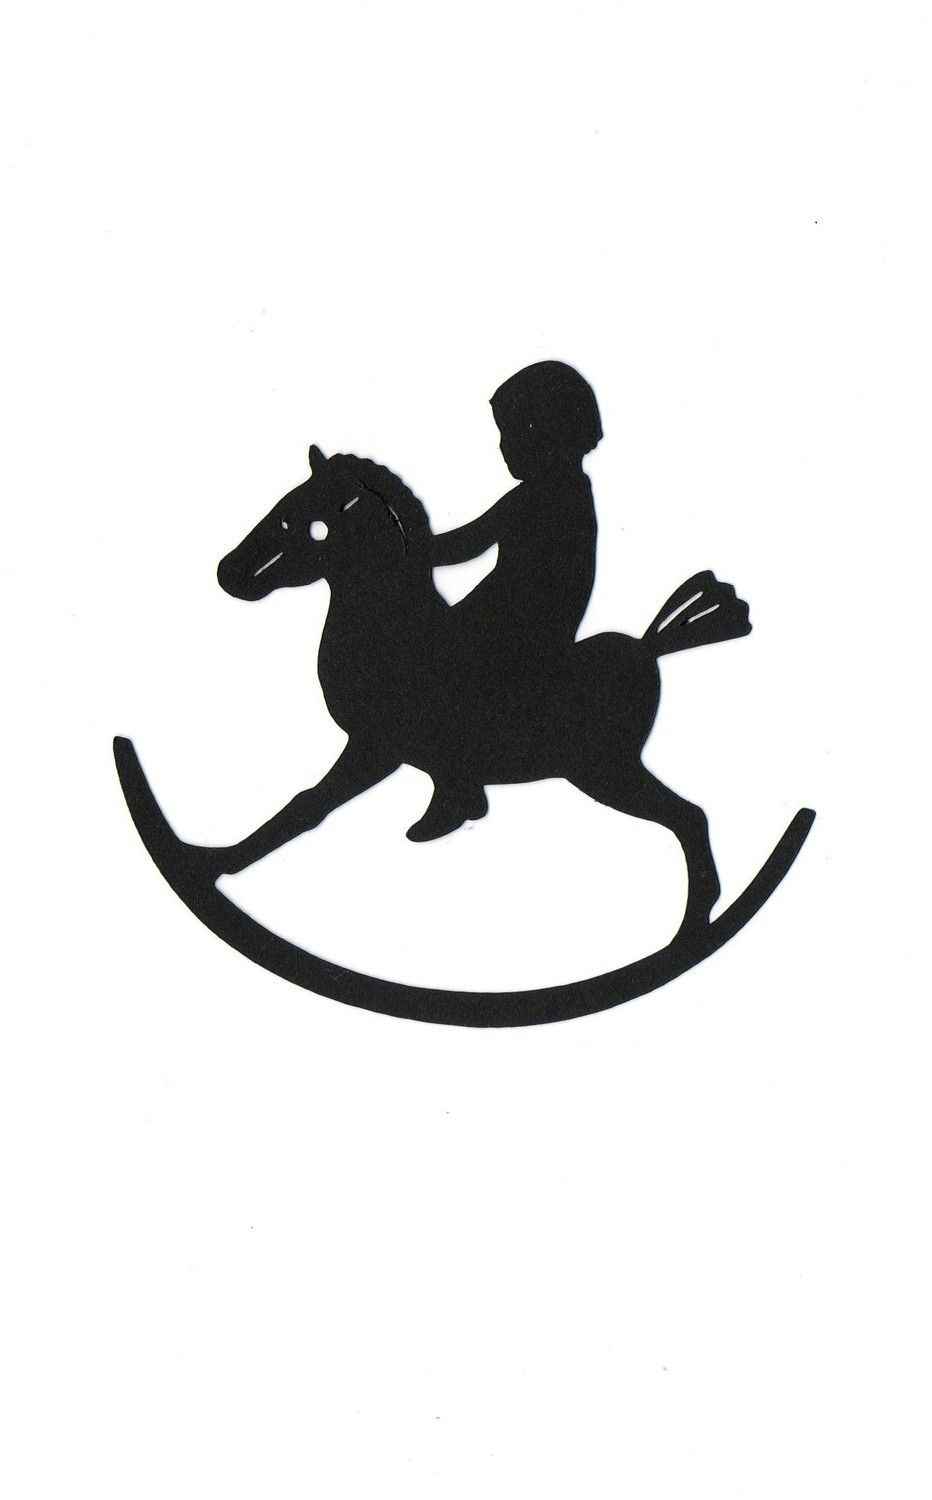 Rocking horse Child Silhouette | silouettes | Pinterest ...